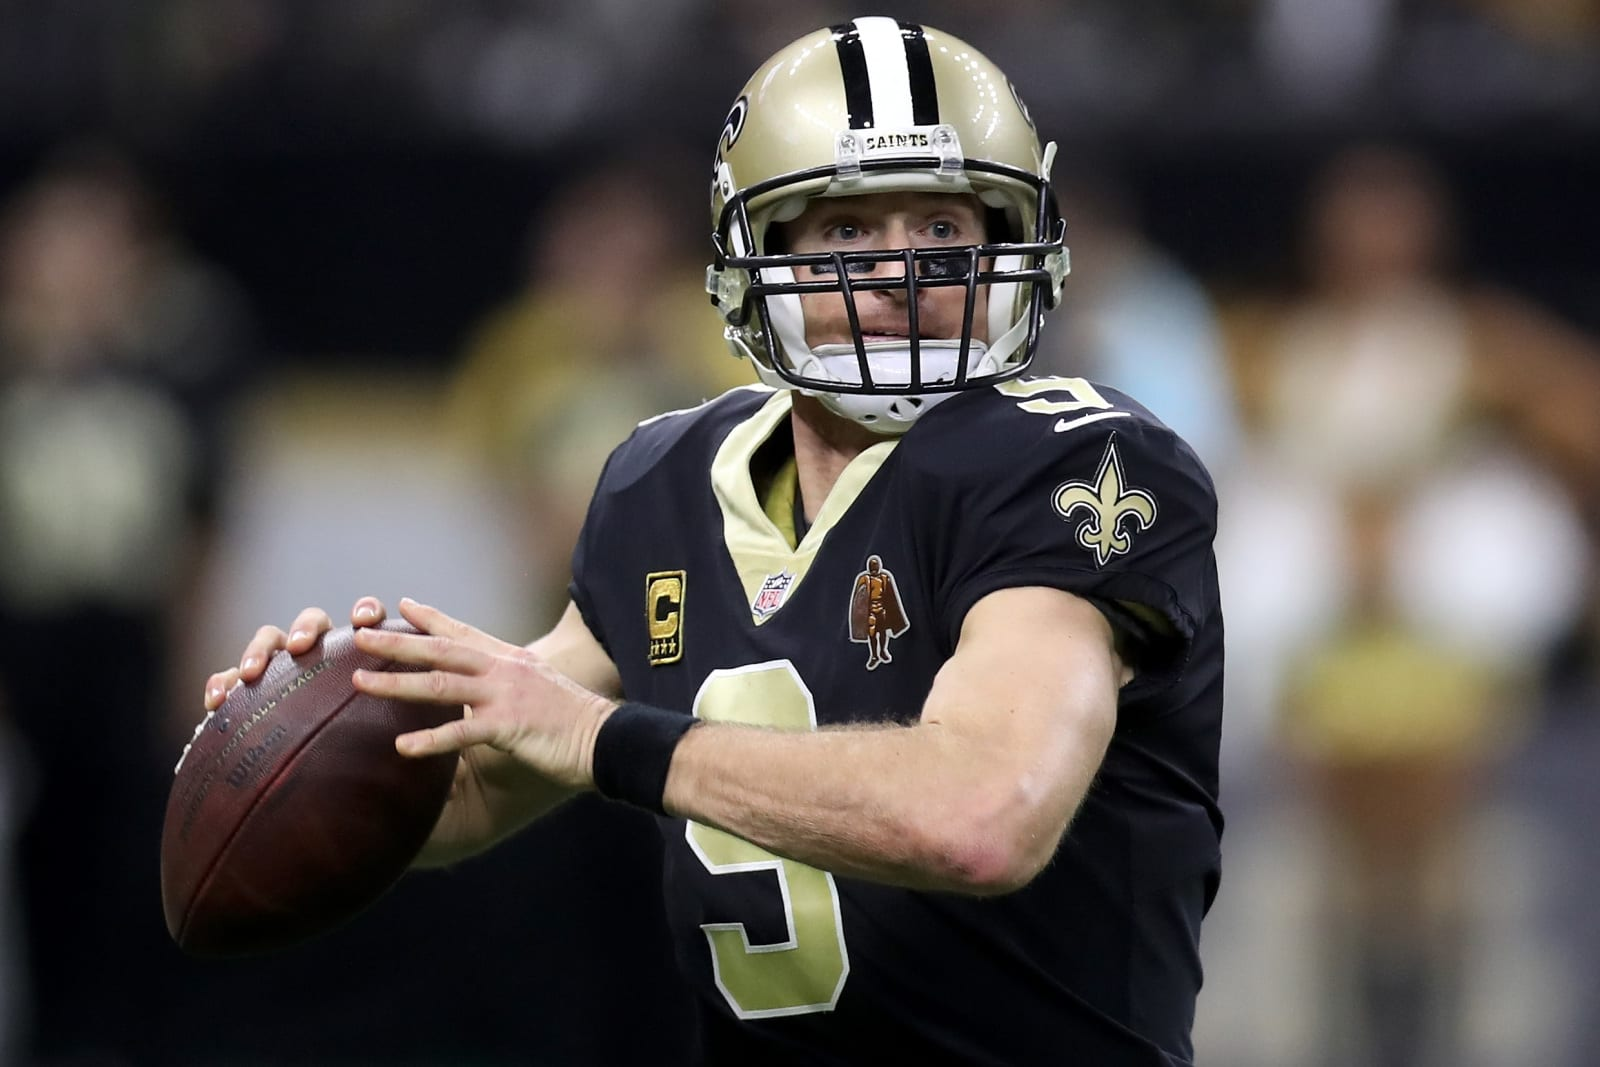 Drew Brees, New Orleans Saints